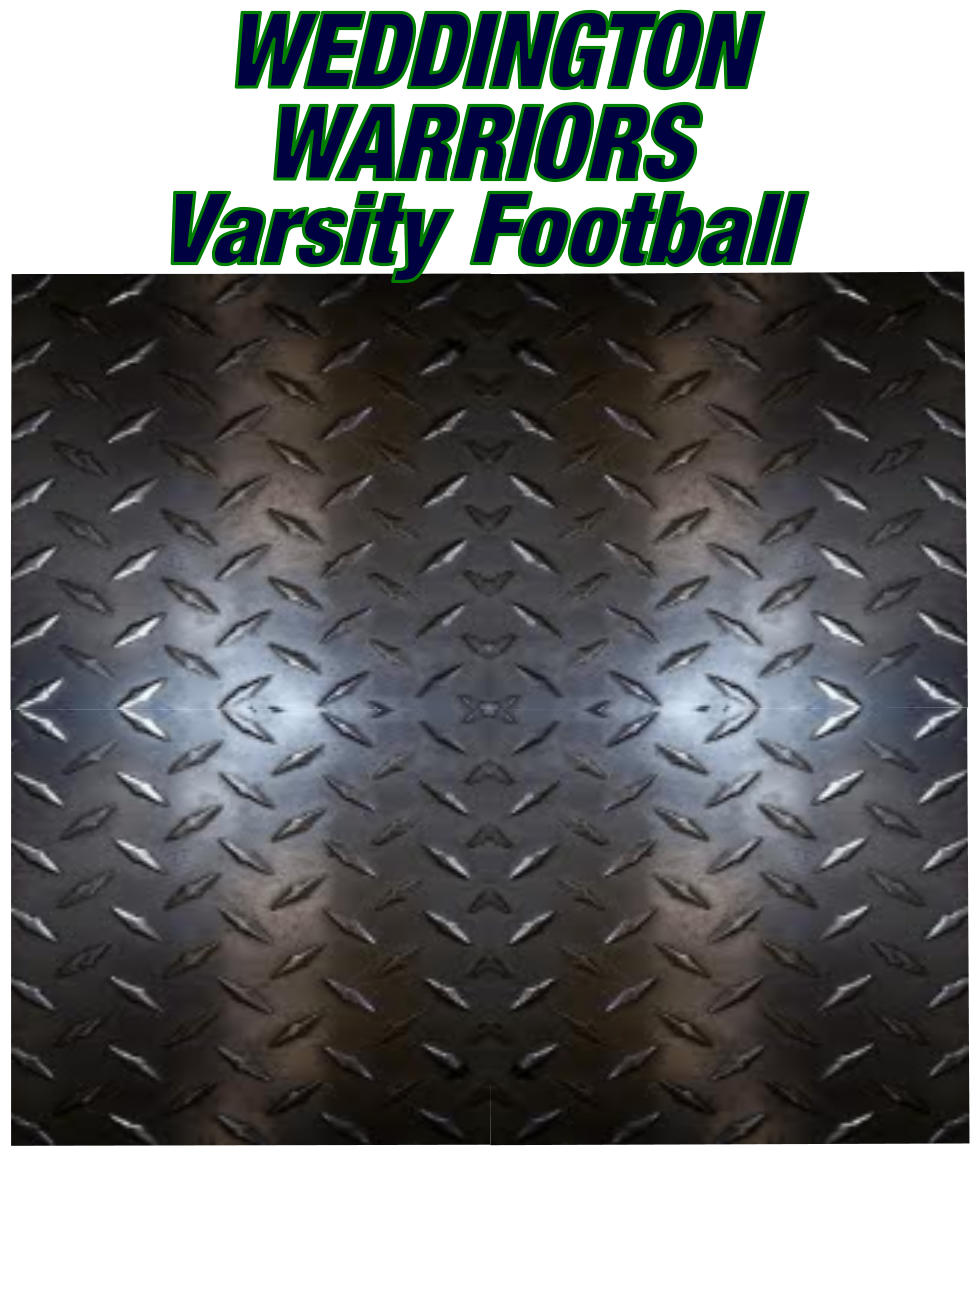 WEDDINGTON WARRIORS Varsity Football